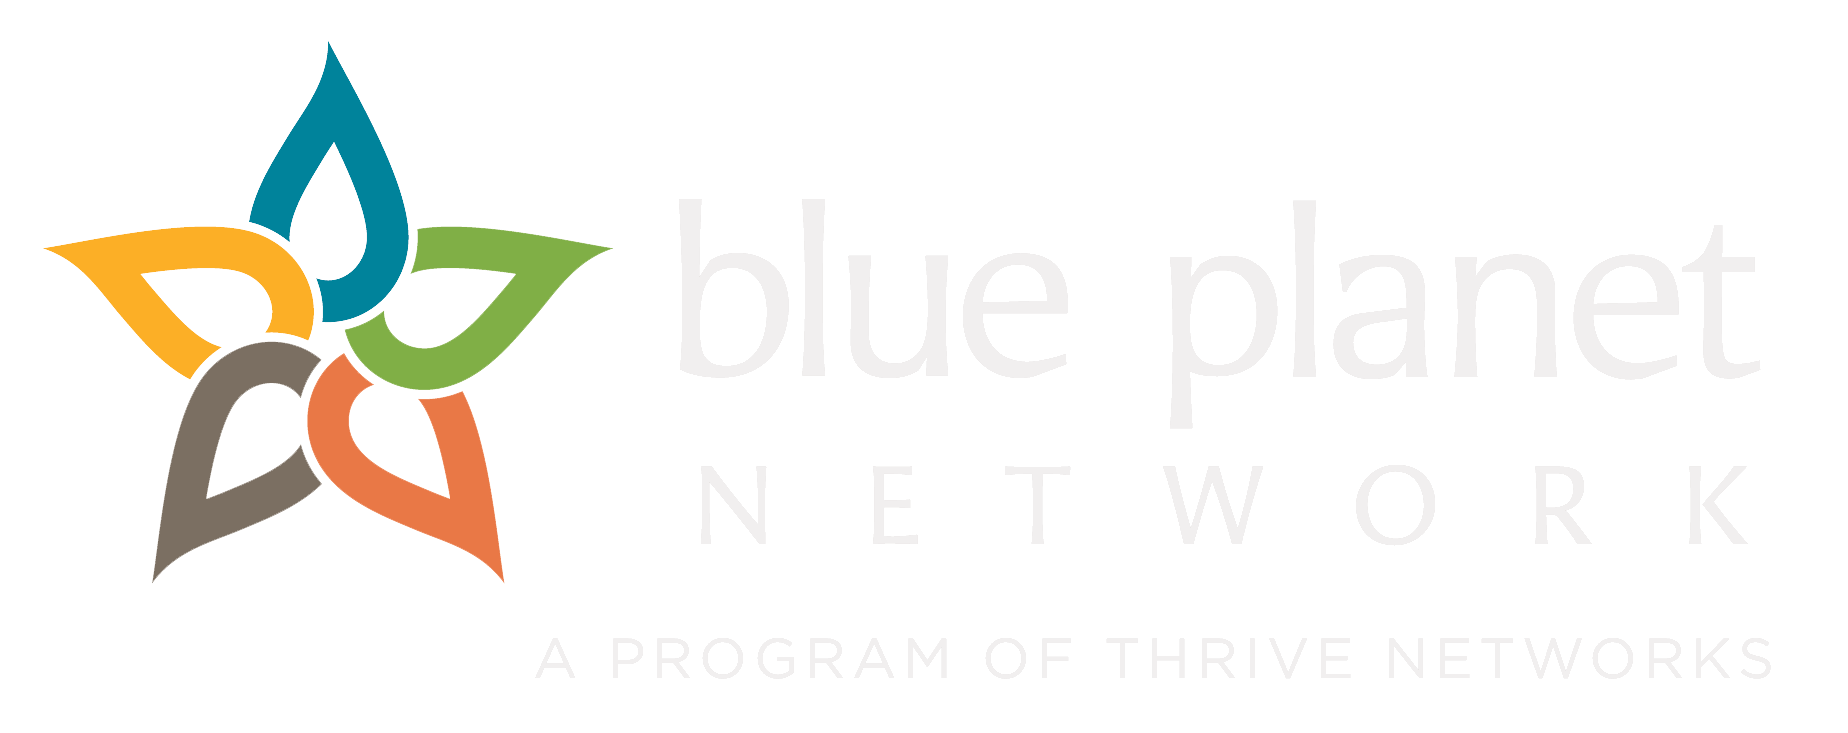 Blue planet network why. Clipart water potable water